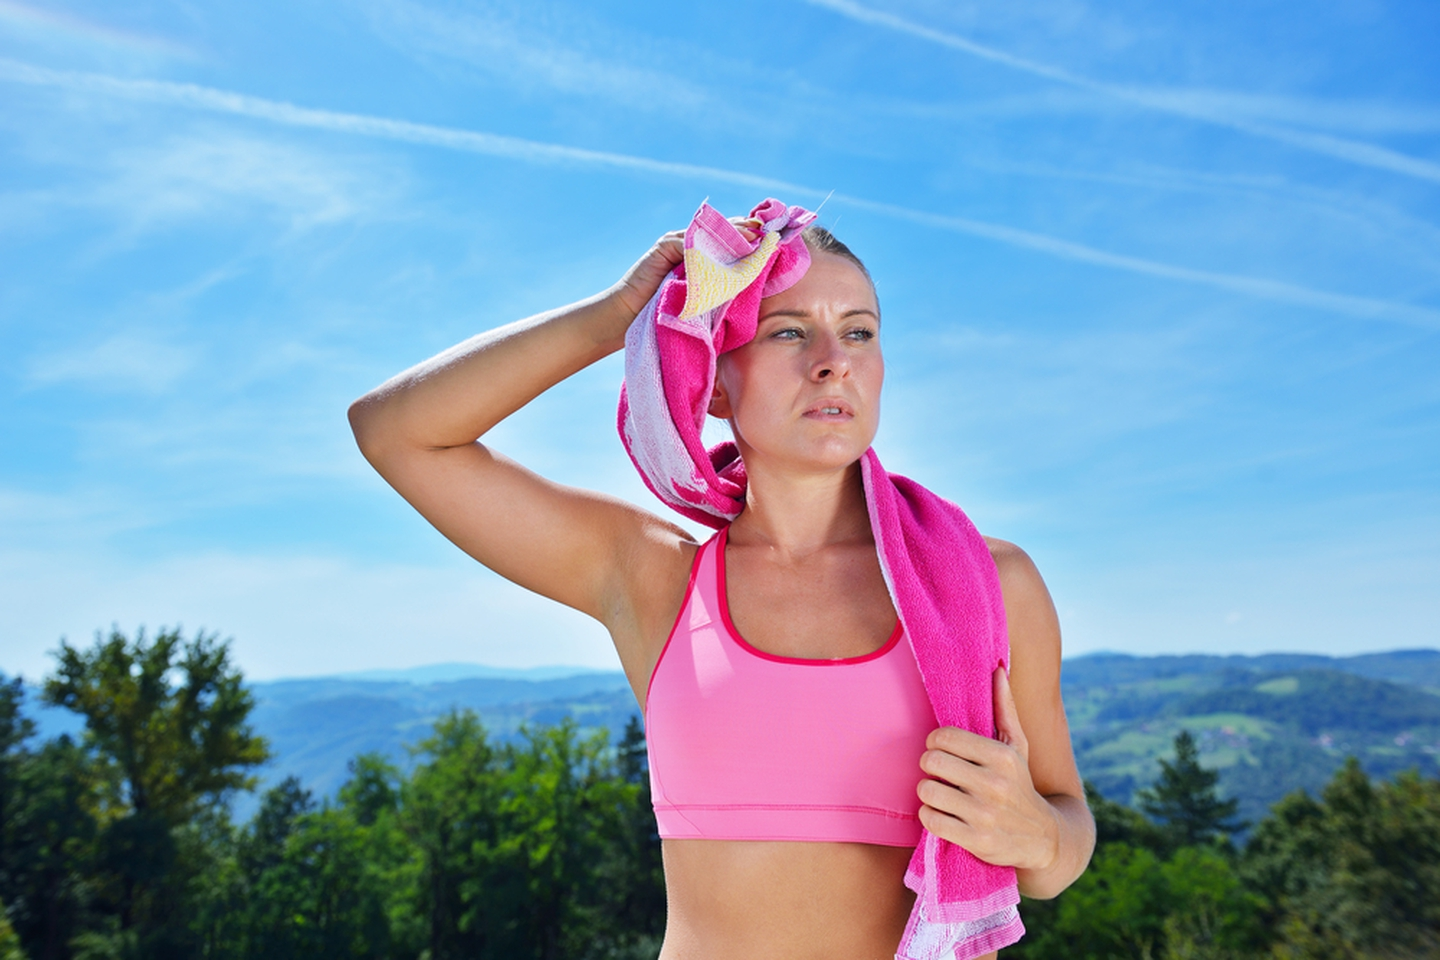 woman_working_out_sweaty.jpg.1440x960_q100_crop-scale_upscale